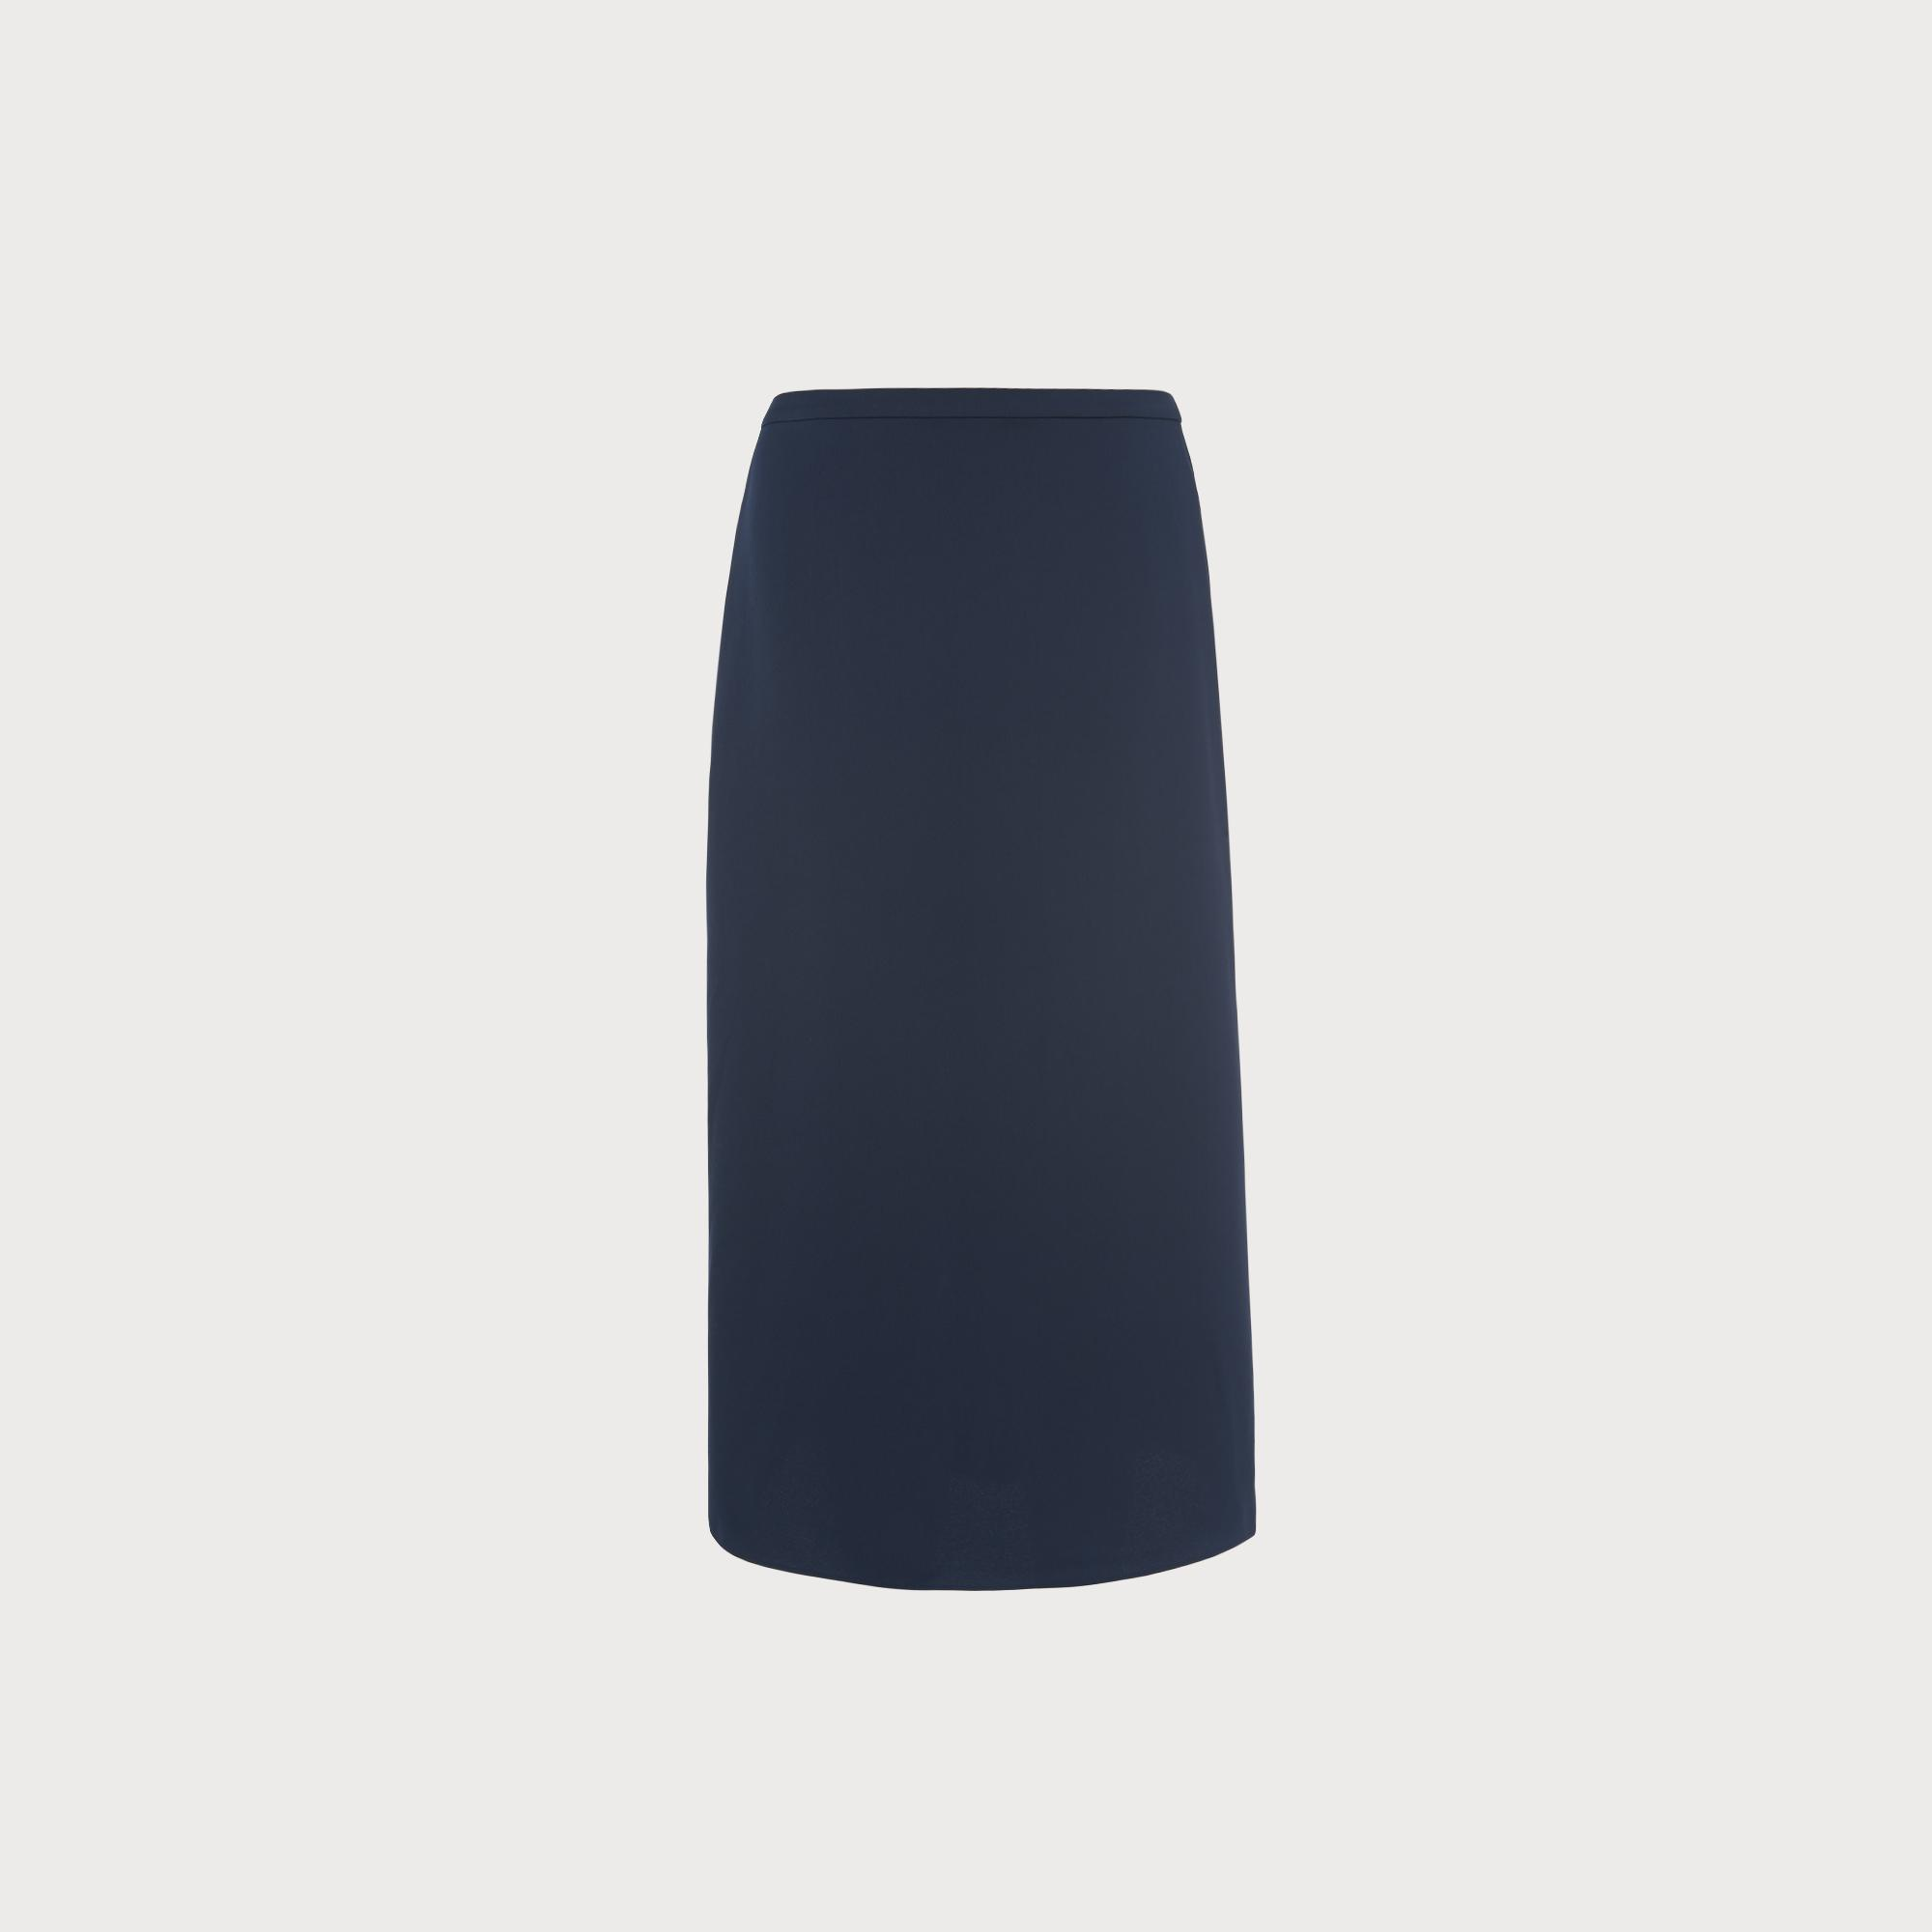 Satin Navy Slip Skirt by L.K.Bennett